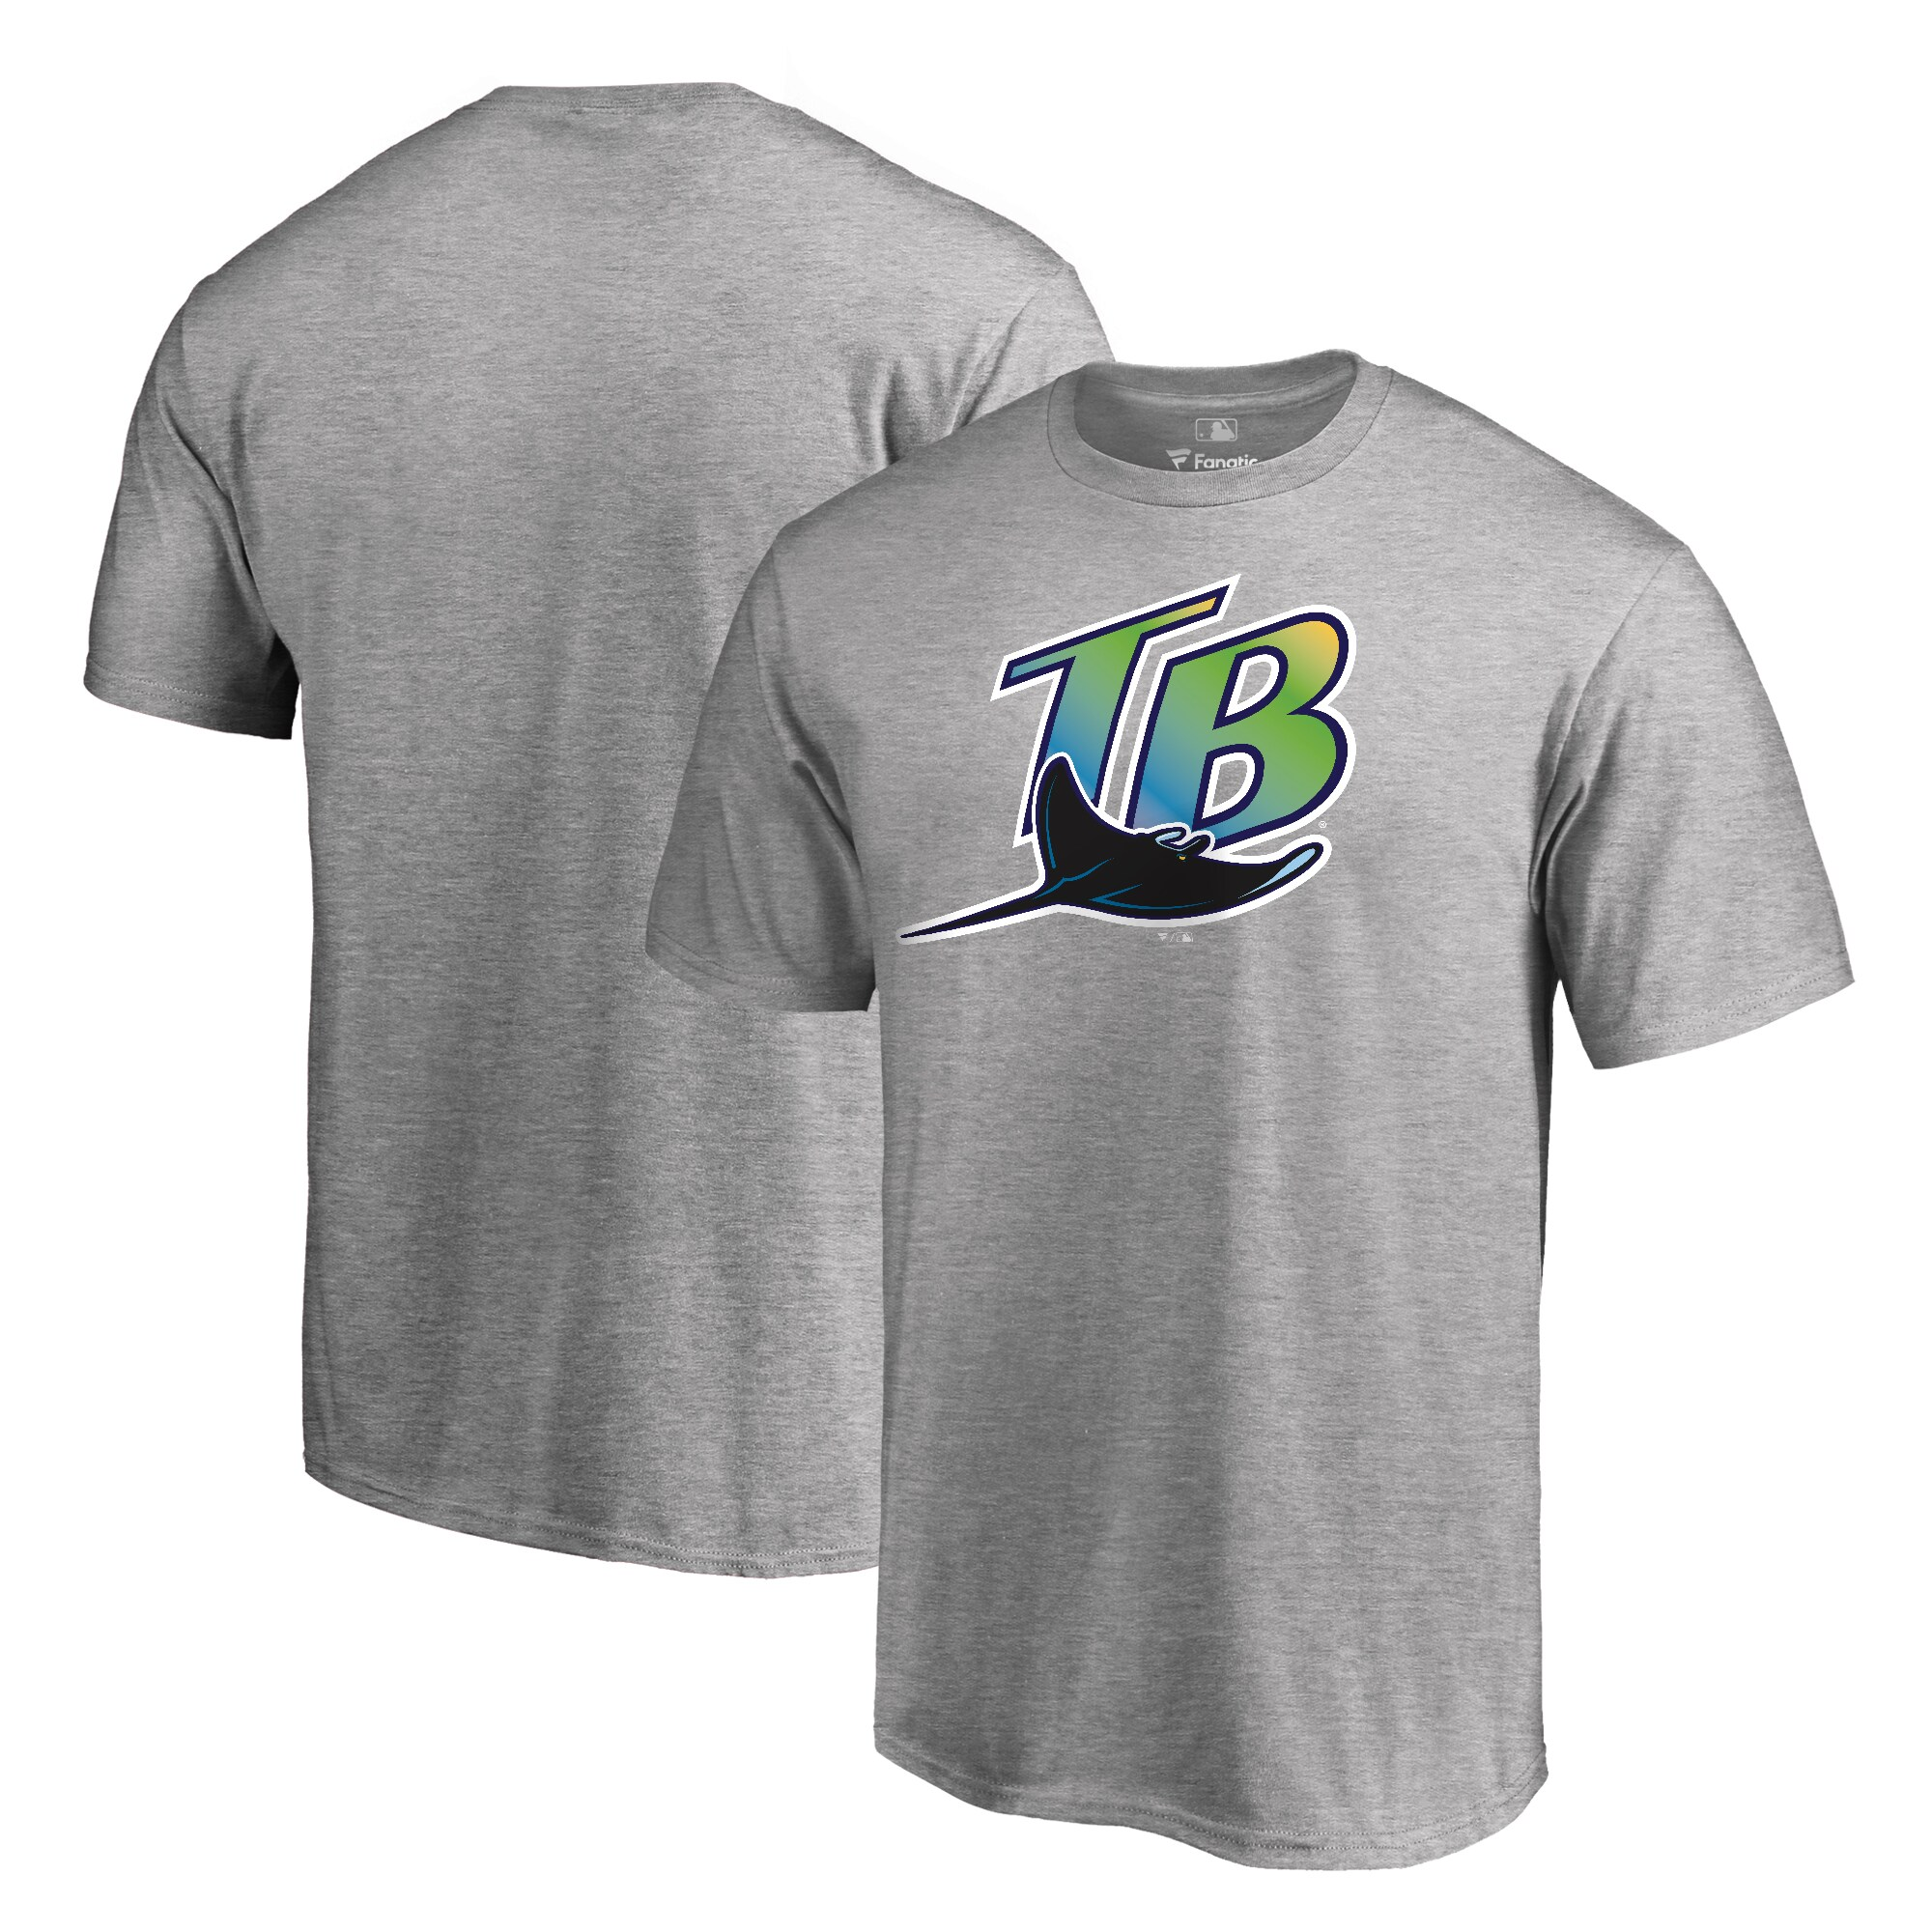 Tampa Bay Rays Fanatics Branded Cooperstown Collection Forbes T-Shirt - Ash